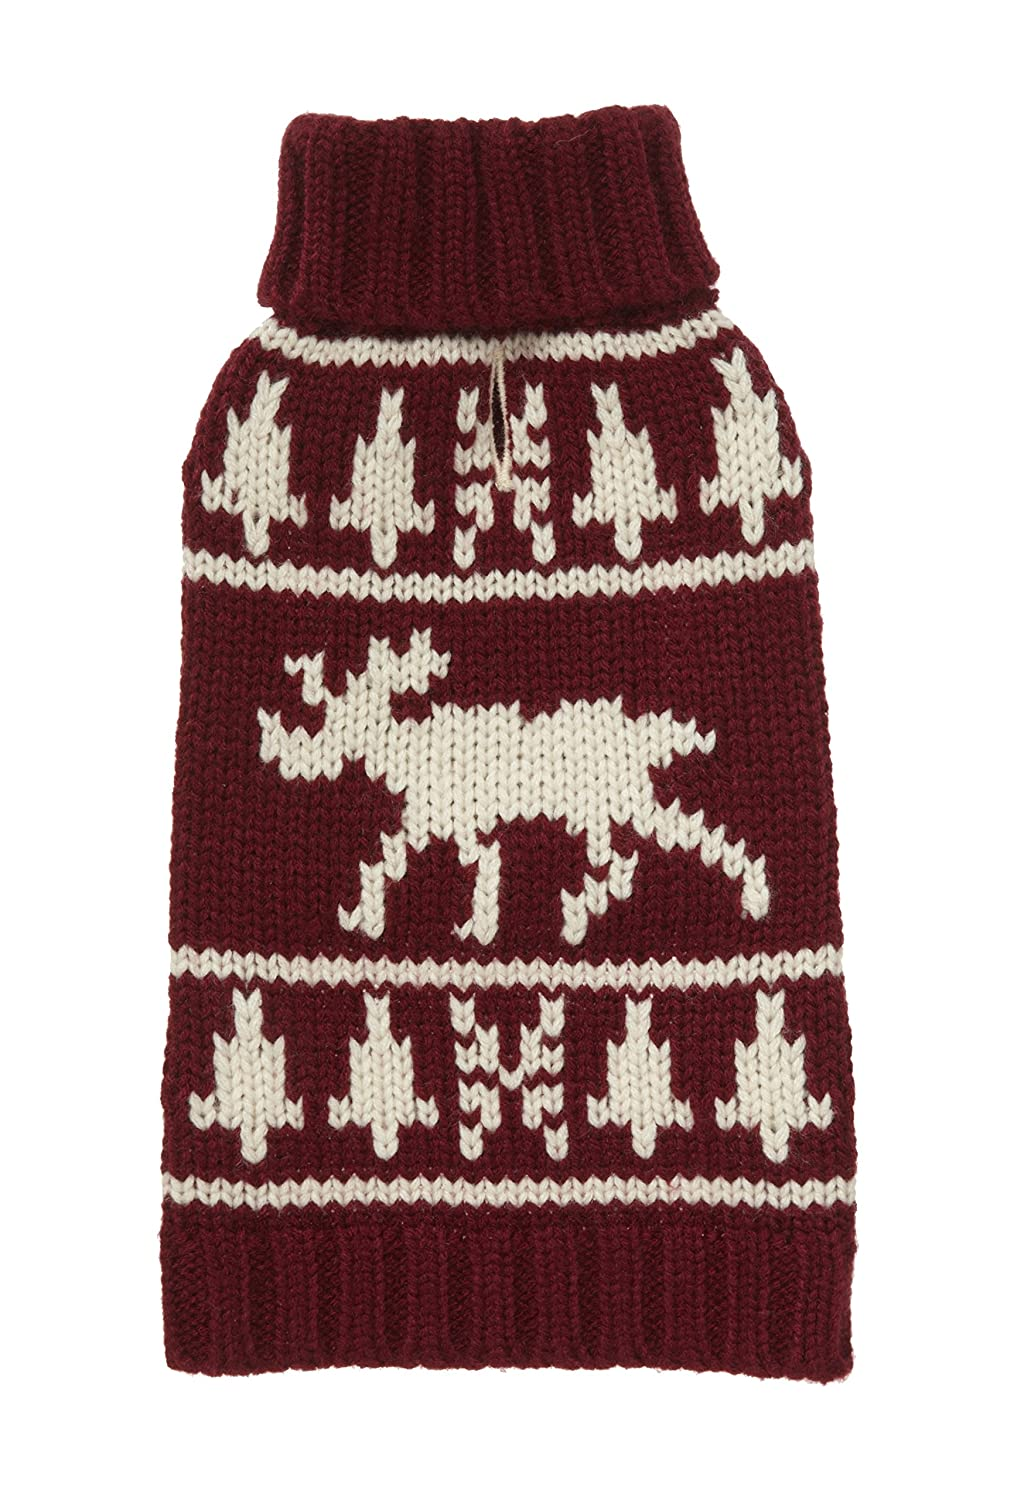 14\ Fab Dog Knit Turtleneck Dog Sweater Moose, Burgundy, 14-Inch Length